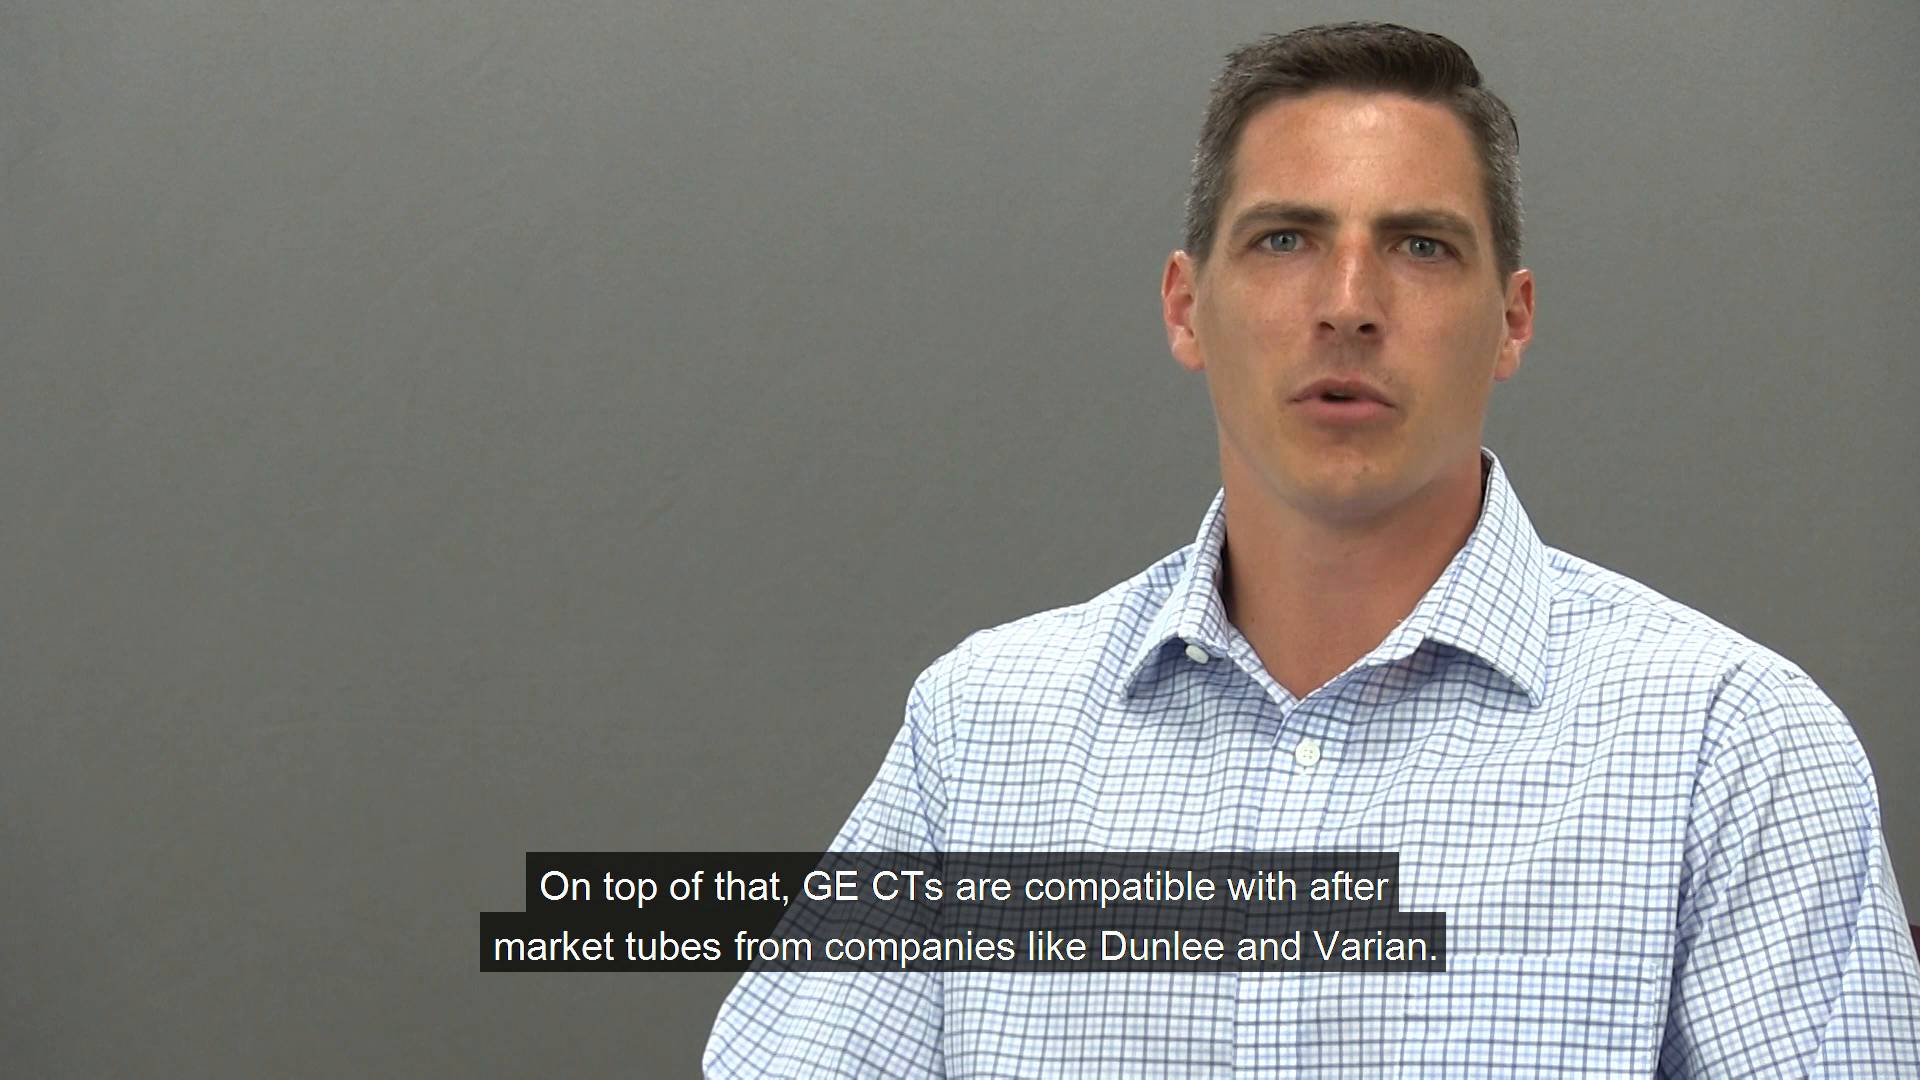 Why Buy a GE CT Scanner?